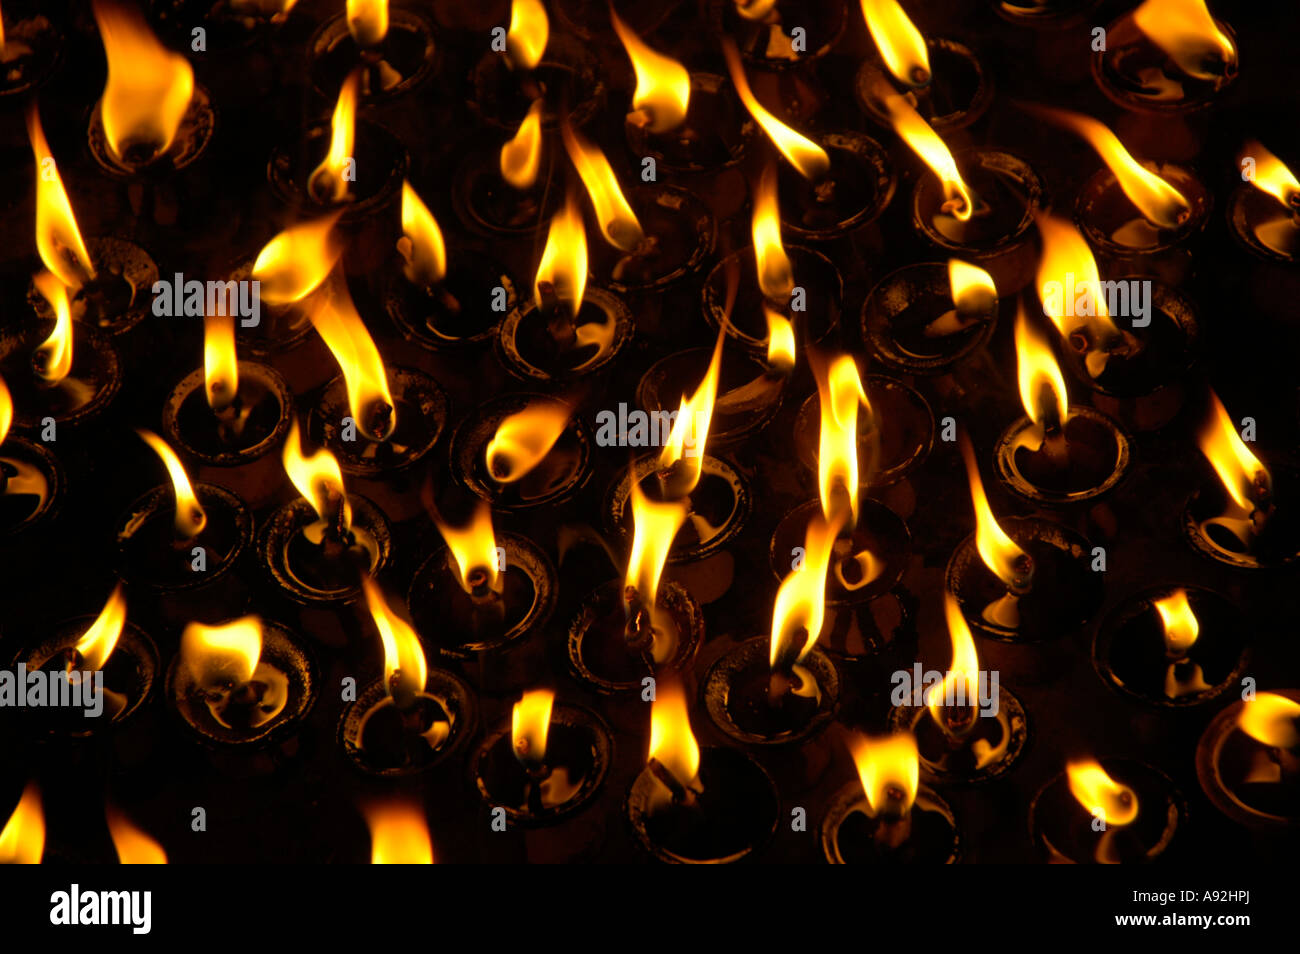 Burning flames of butter lamps in the darkness Kathmandu Nepal - Stock Image